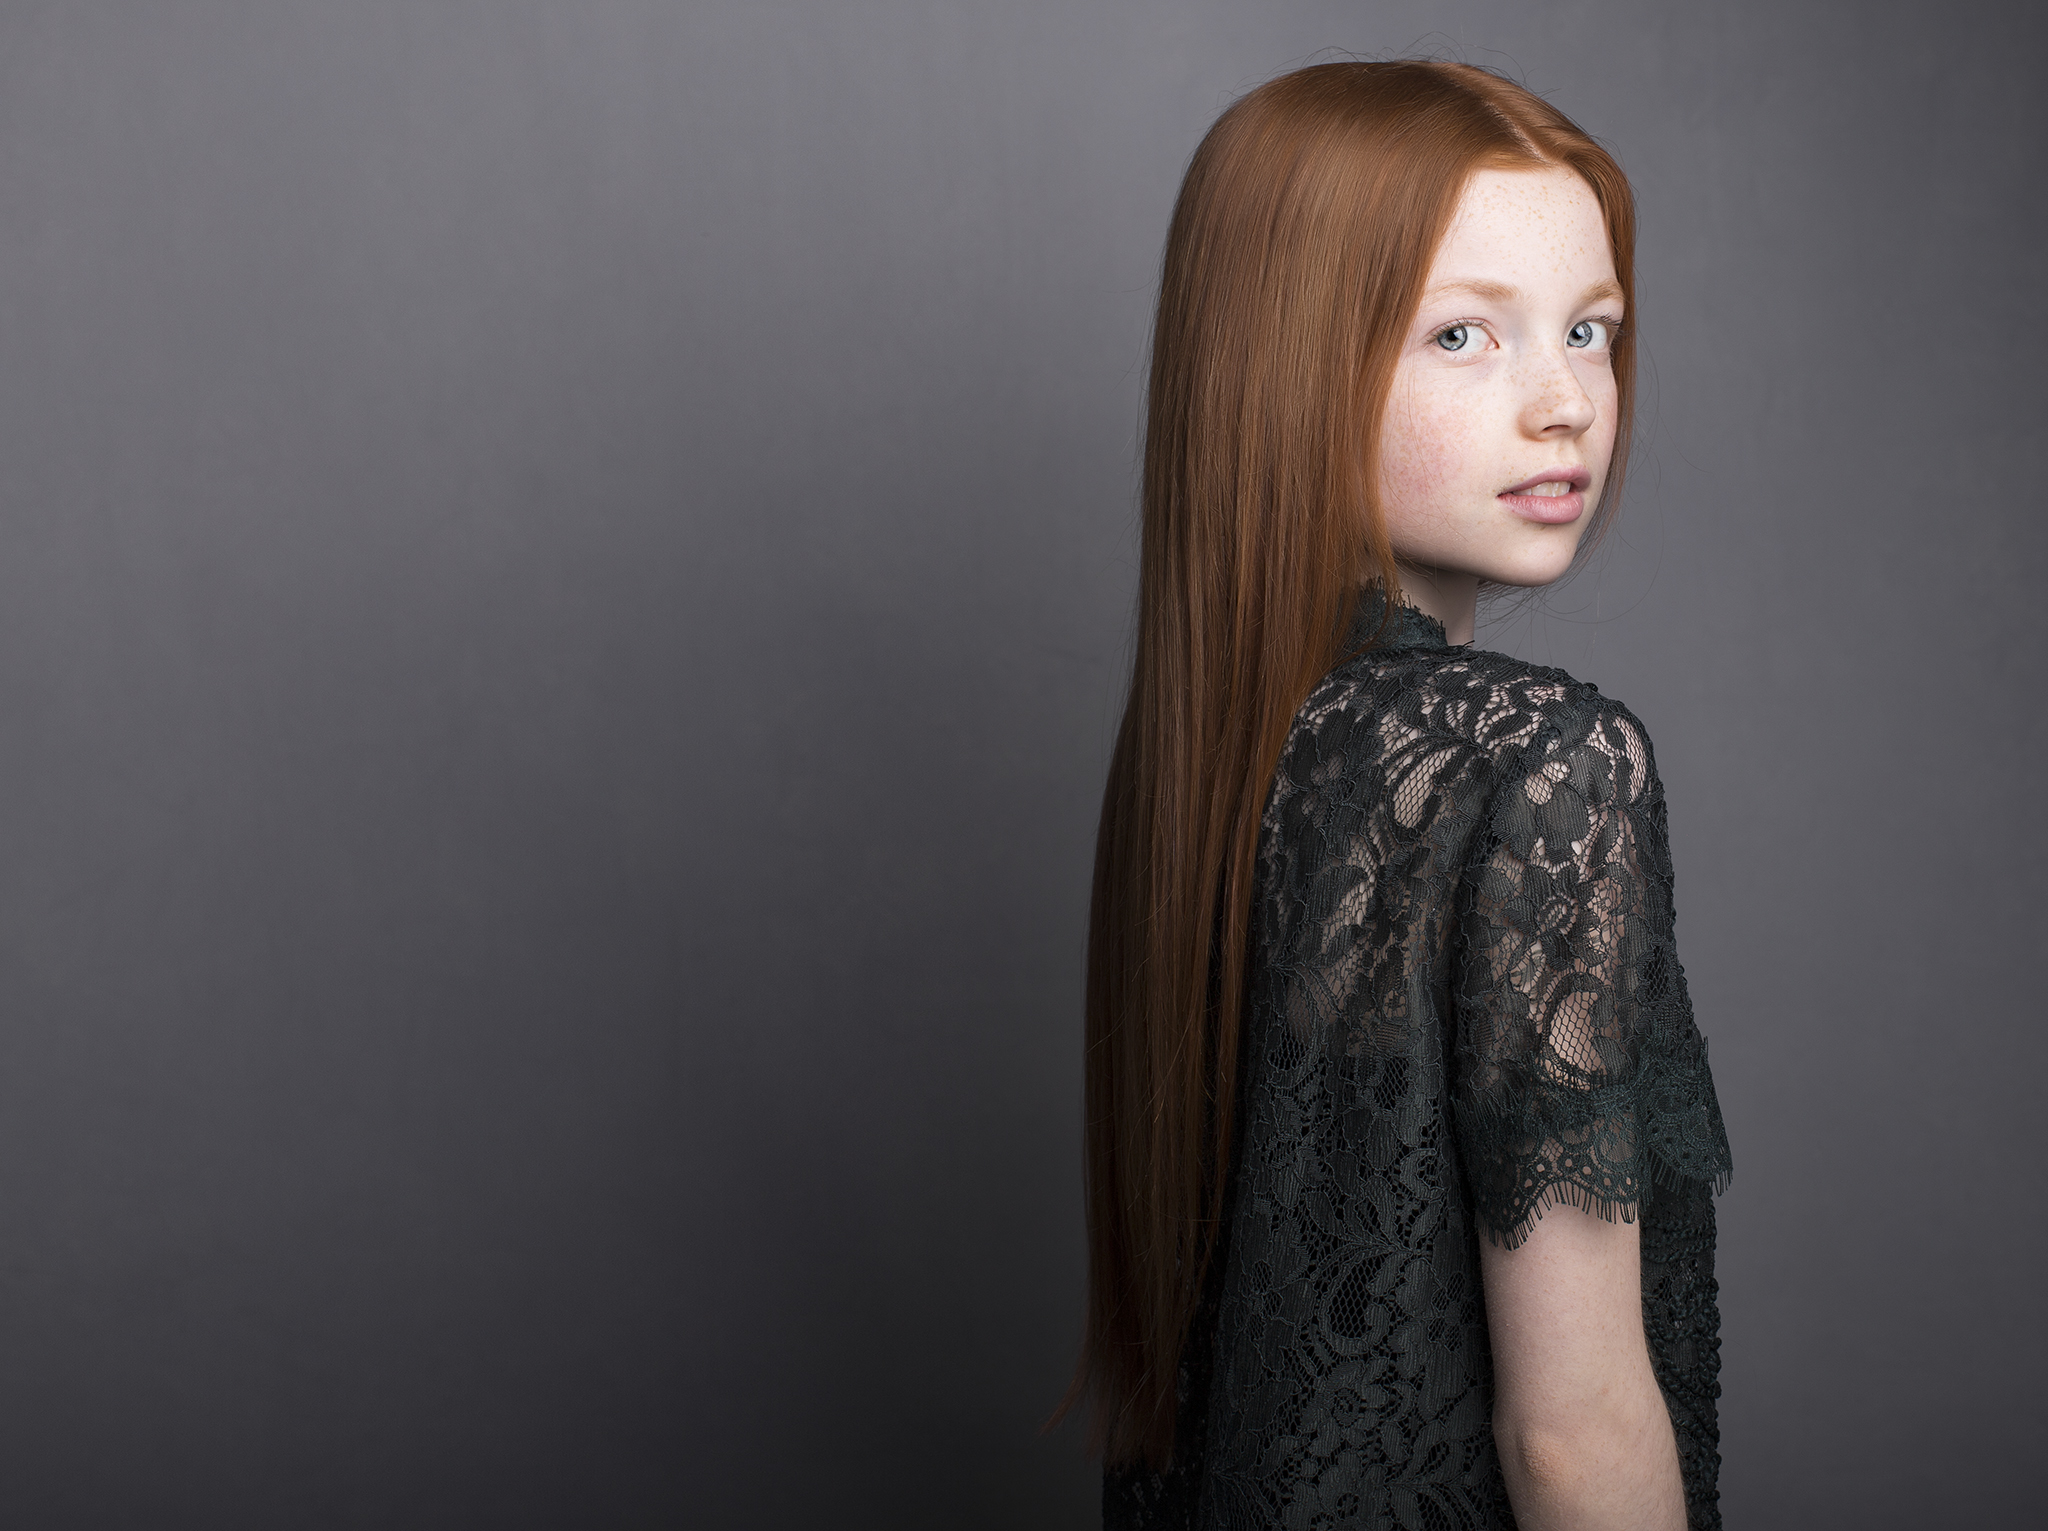 Elizabethg_fineart_portrait_photography_esme_kidslondon_model_agency_007.jpg